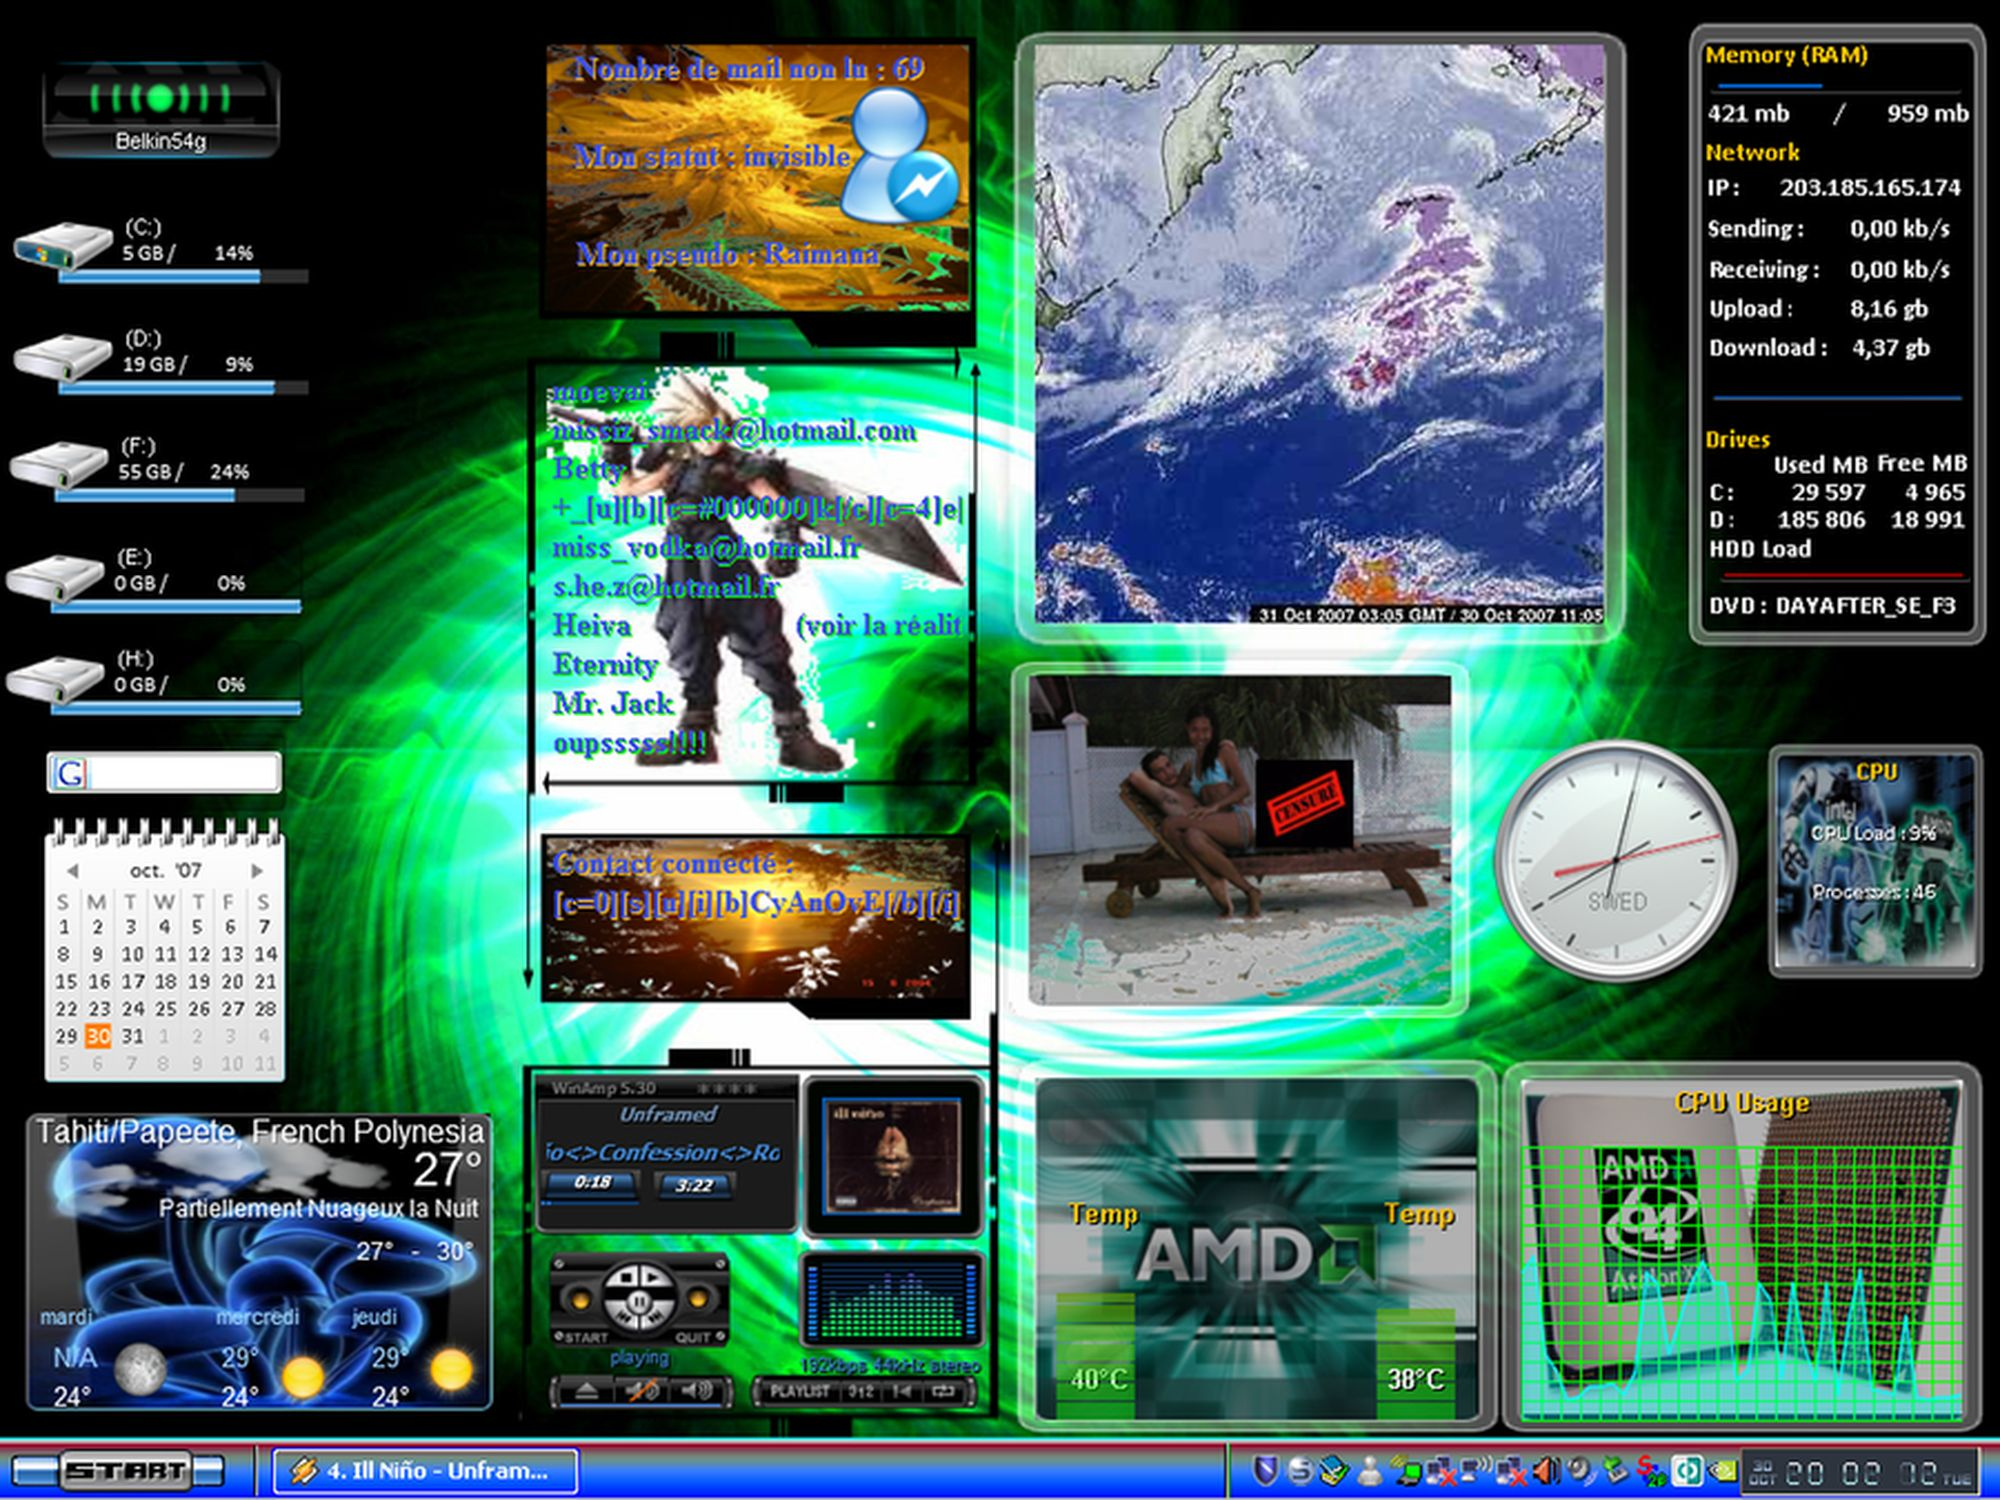 Title: My First Samurize Desktop